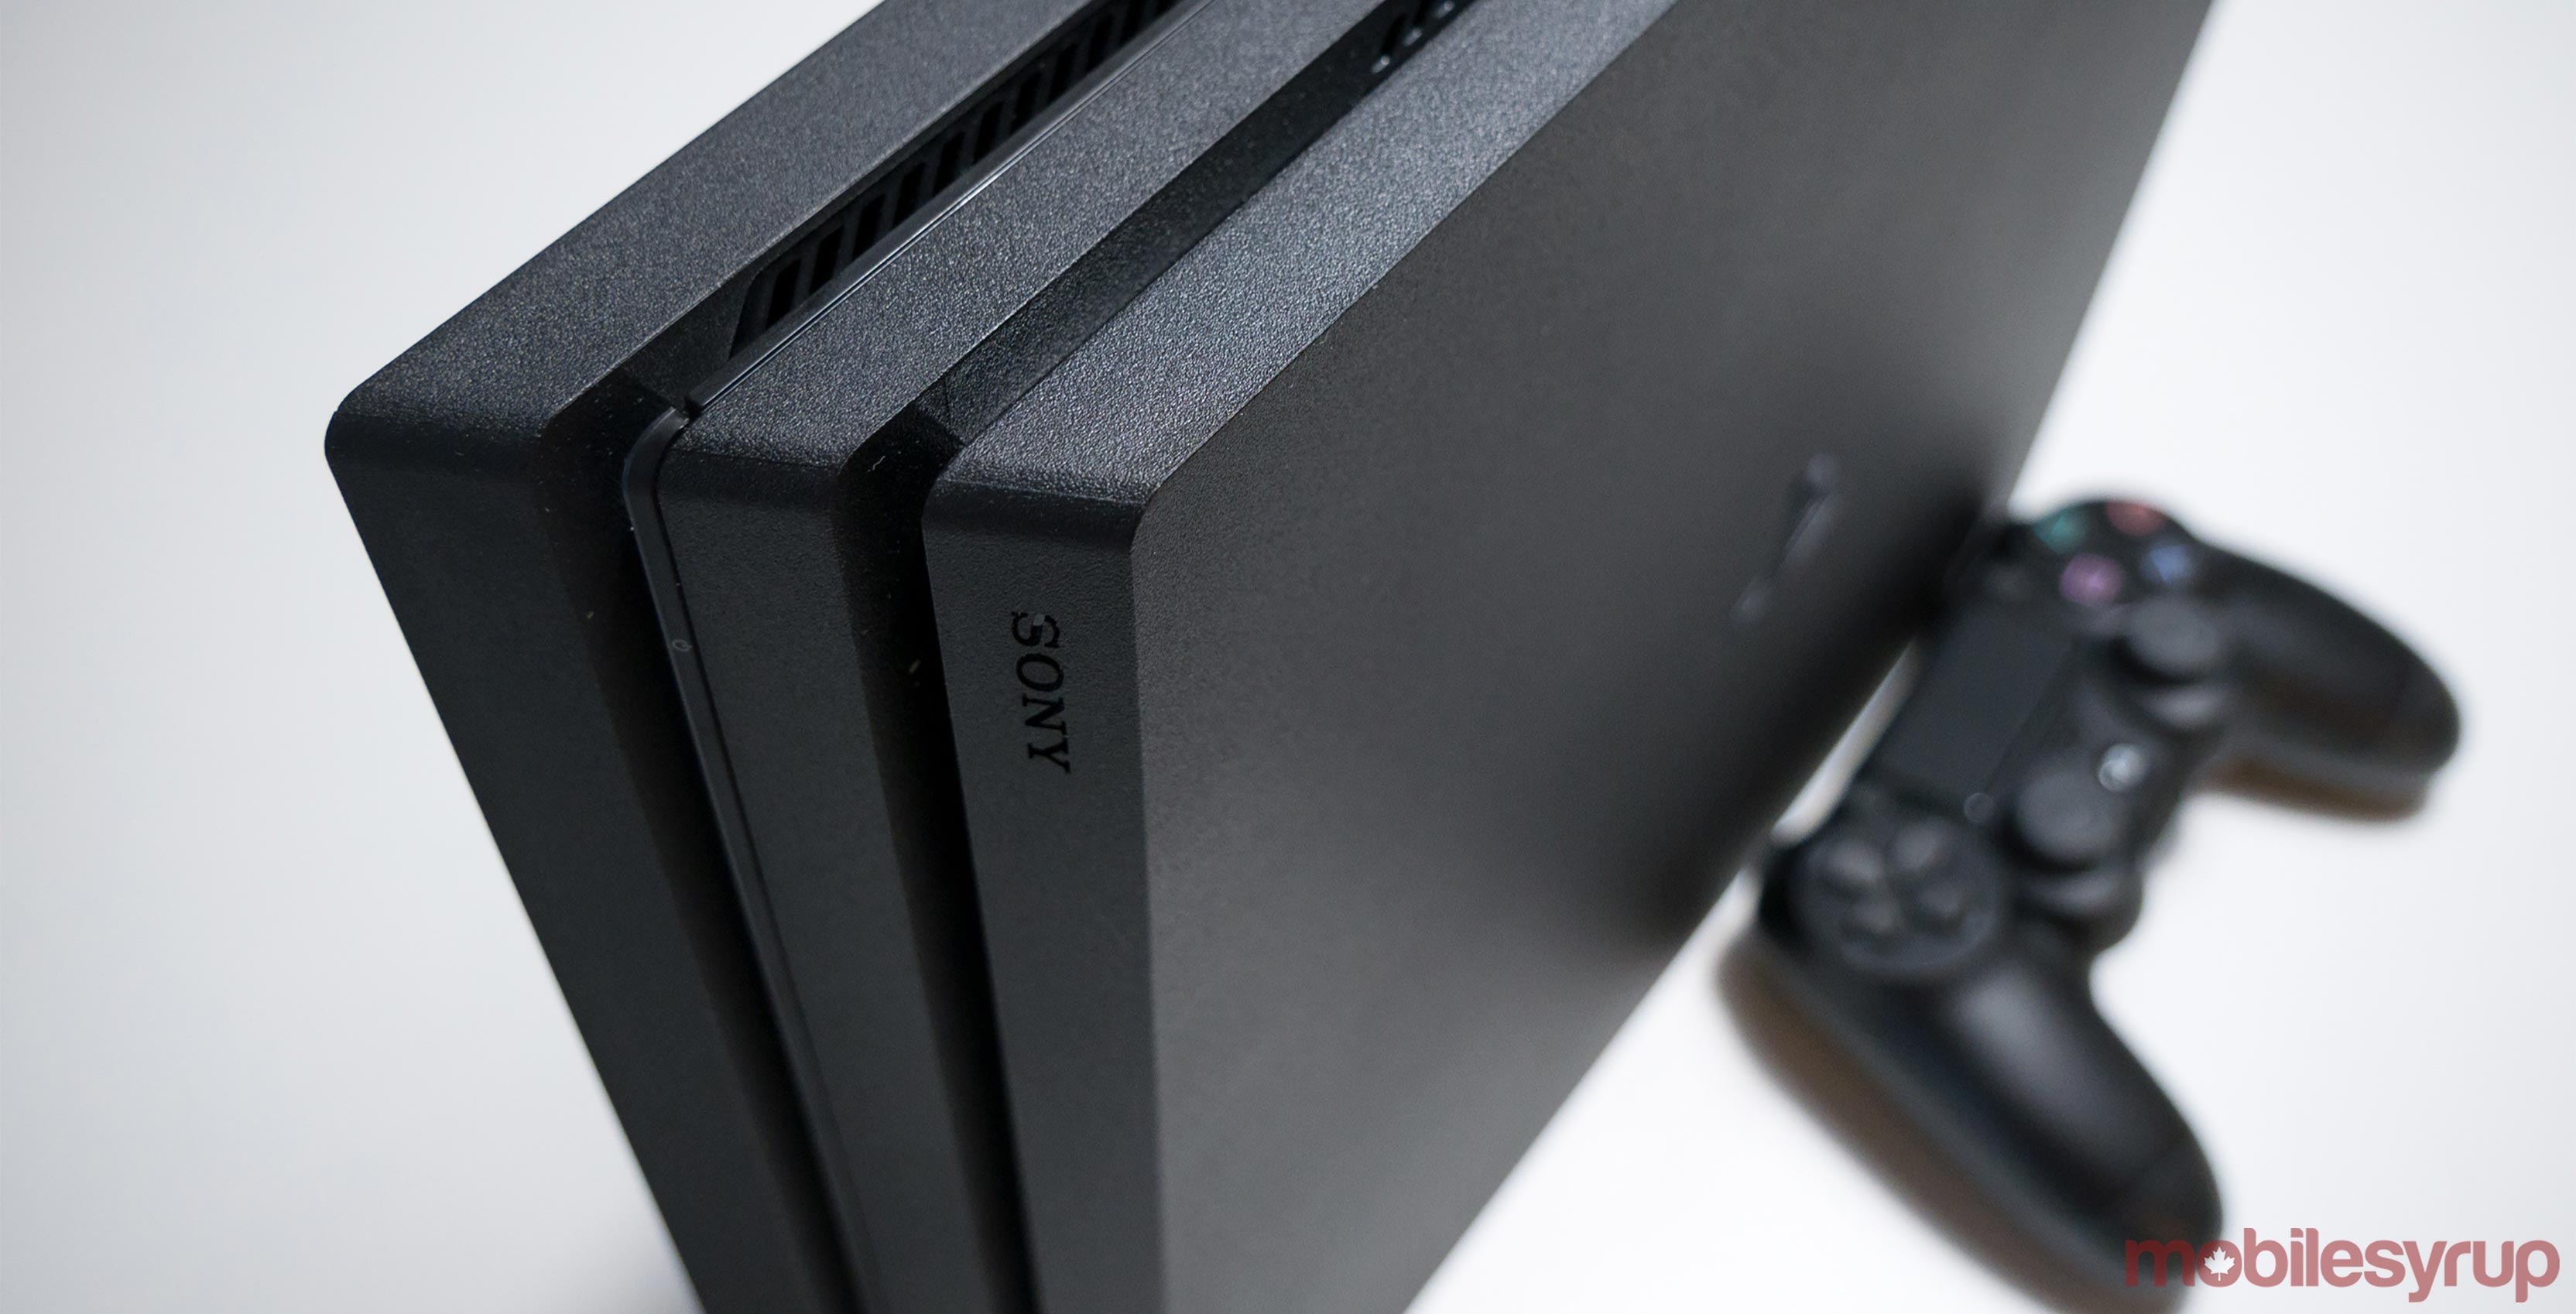 Sony opens registration for PS4 system software update 5.50 beta